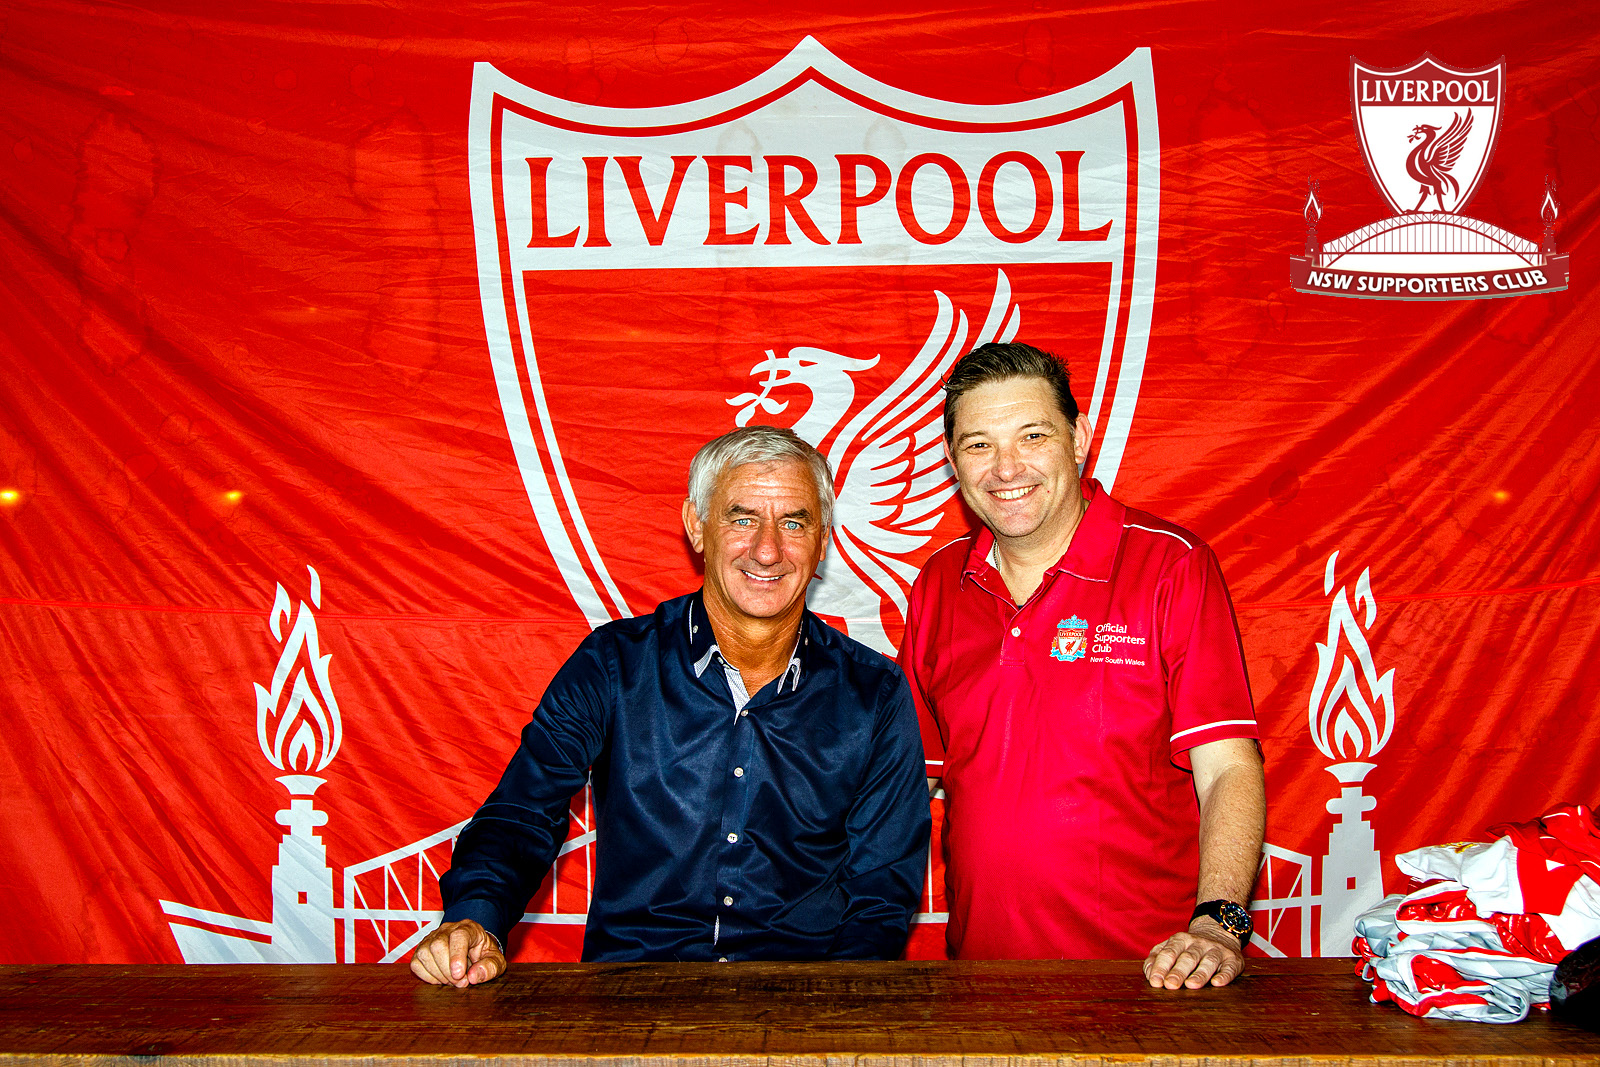 Ian rush 5x newcastle meet greet official lfcnsw supporters club ian rush 5x newcastle meet greet m4hsunfo